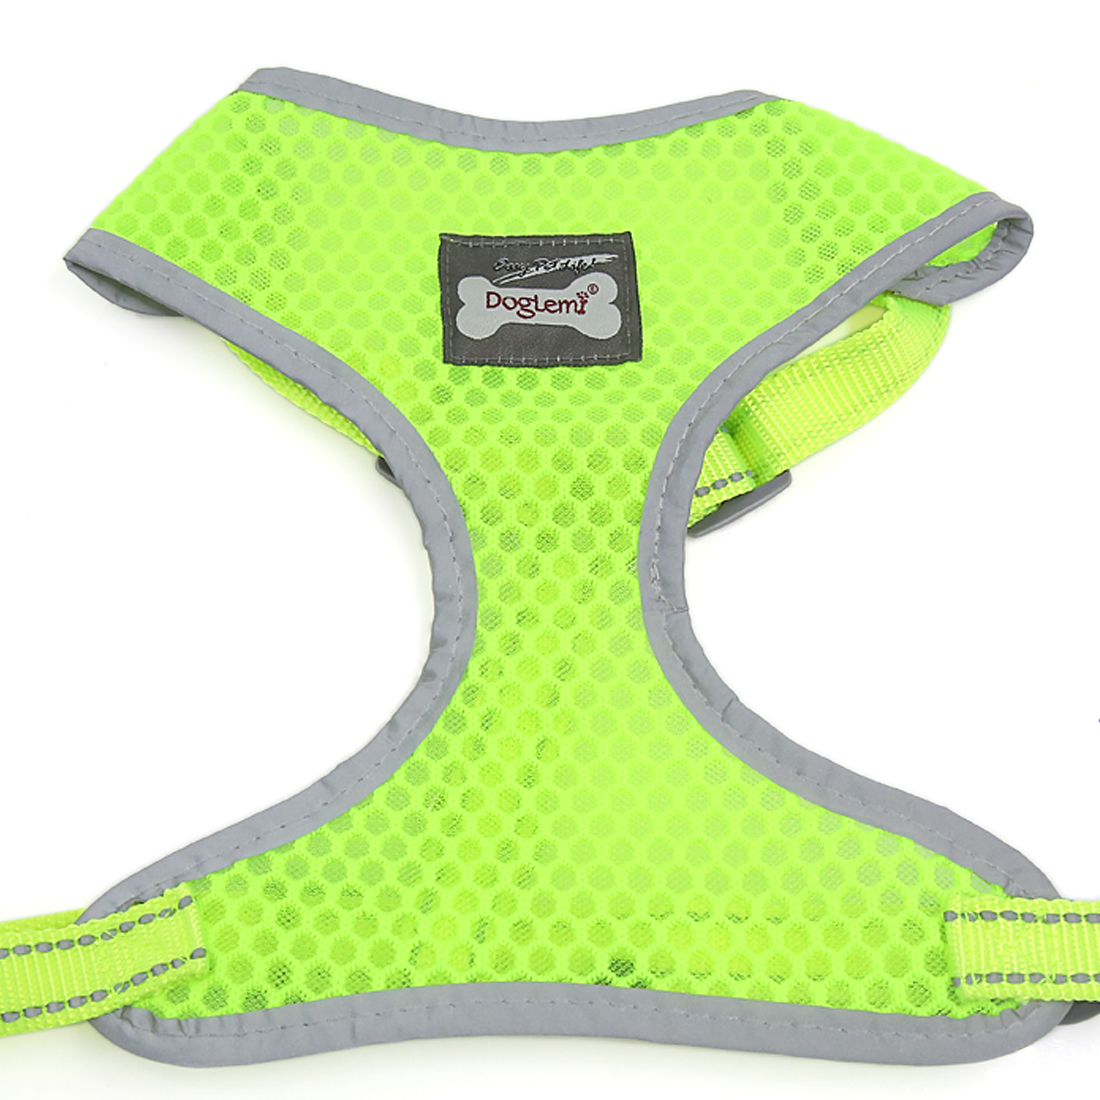 Comfort Control Dog Harness Adjustable Breathable Soft Air Mesh Puppy Harnesses Walk Collar Reflective Vest Yellow M